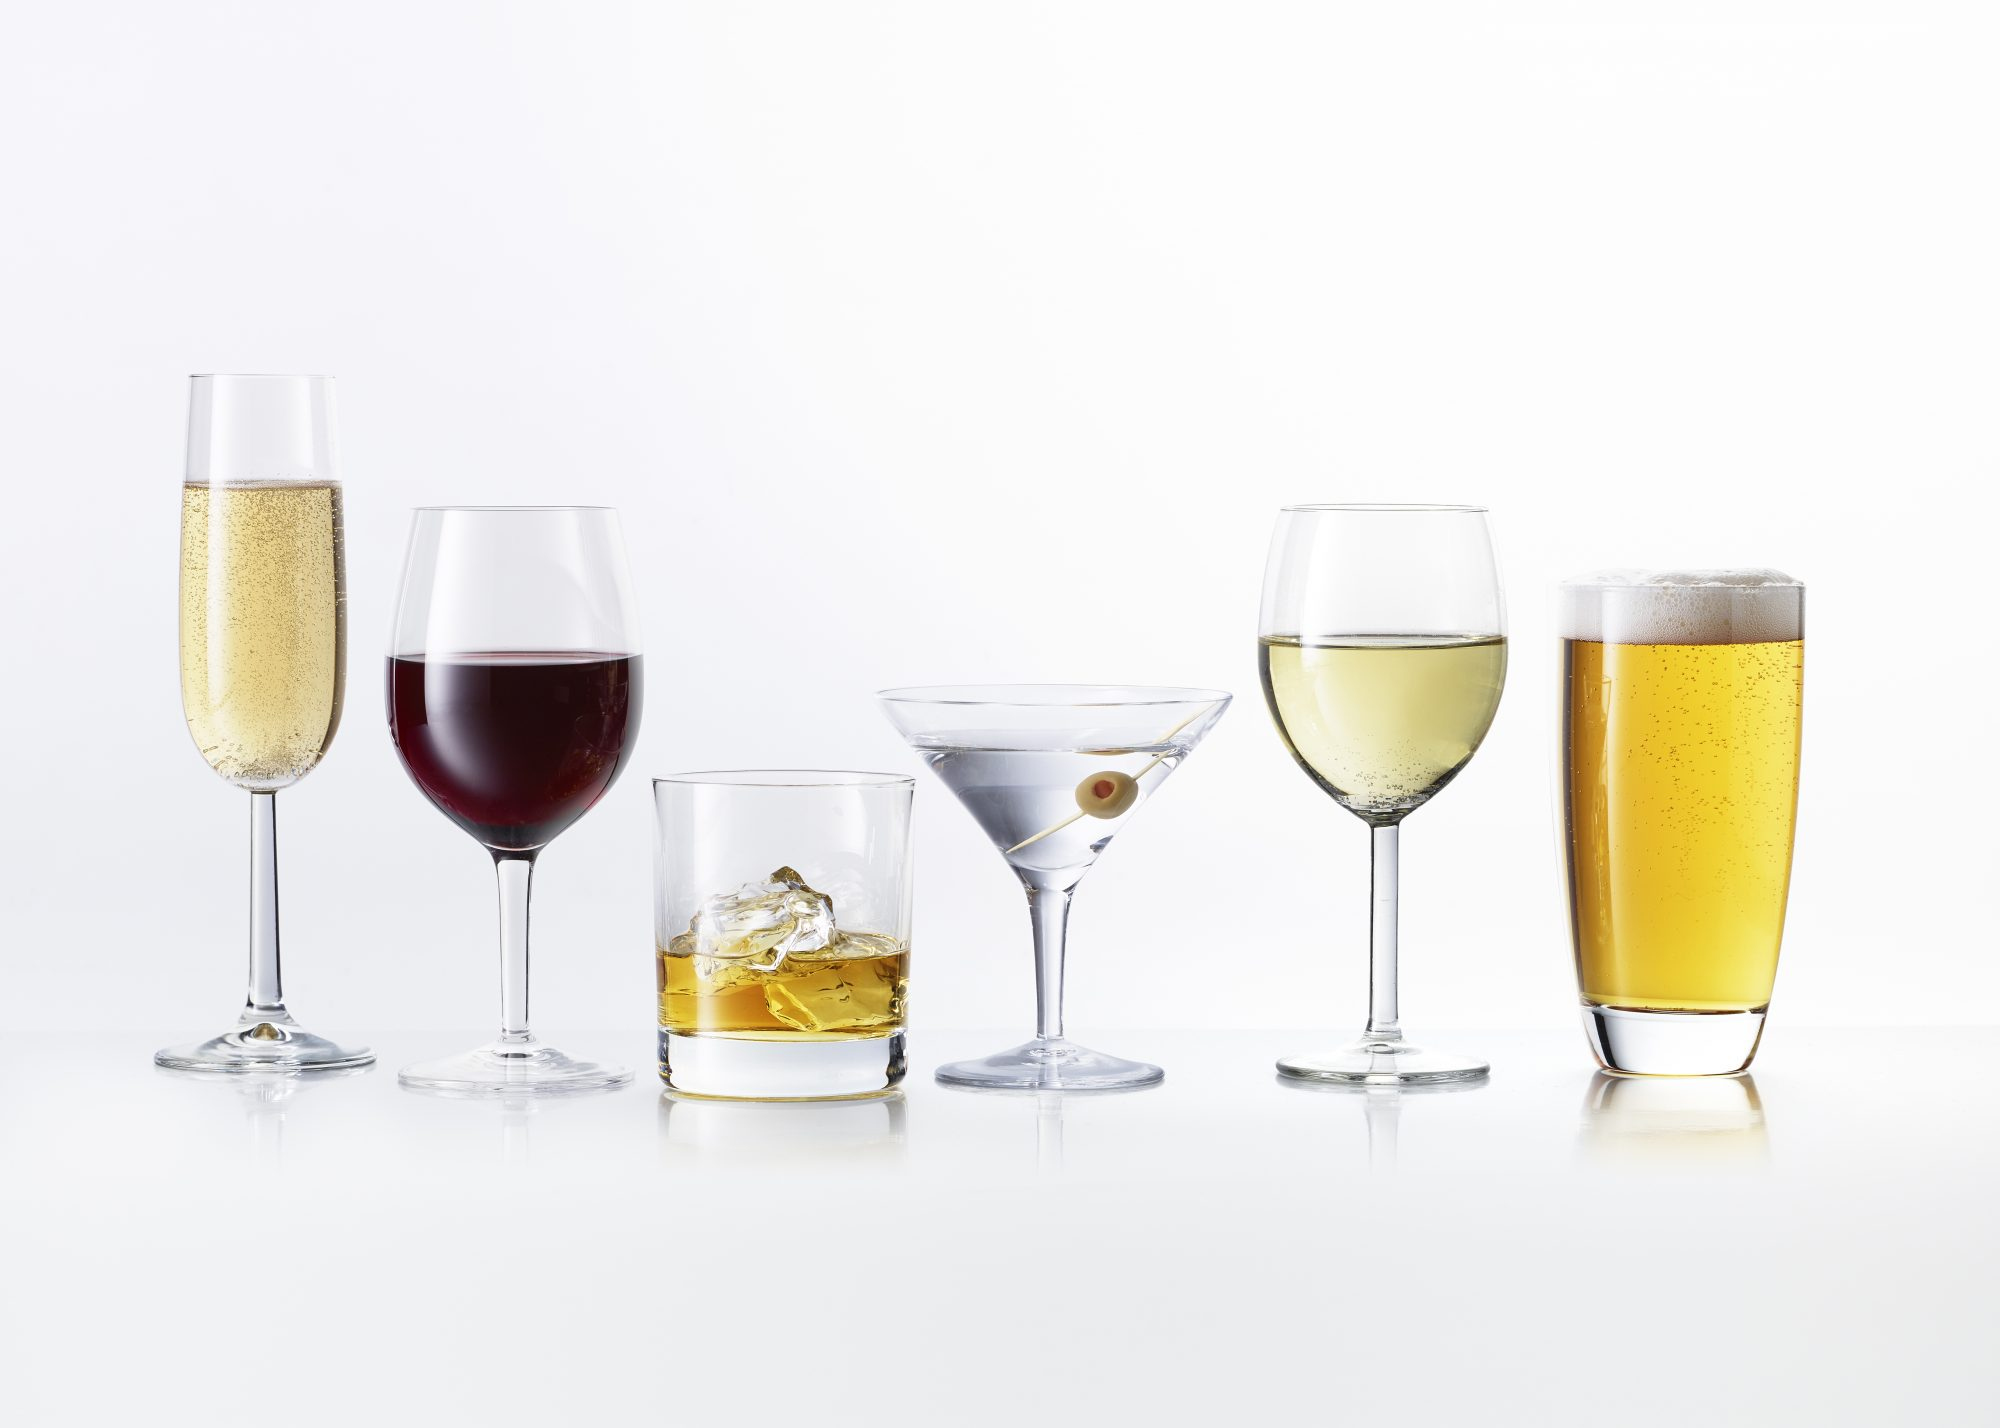 8 Alcoholic Drinks Ranked From Most Calories to Least